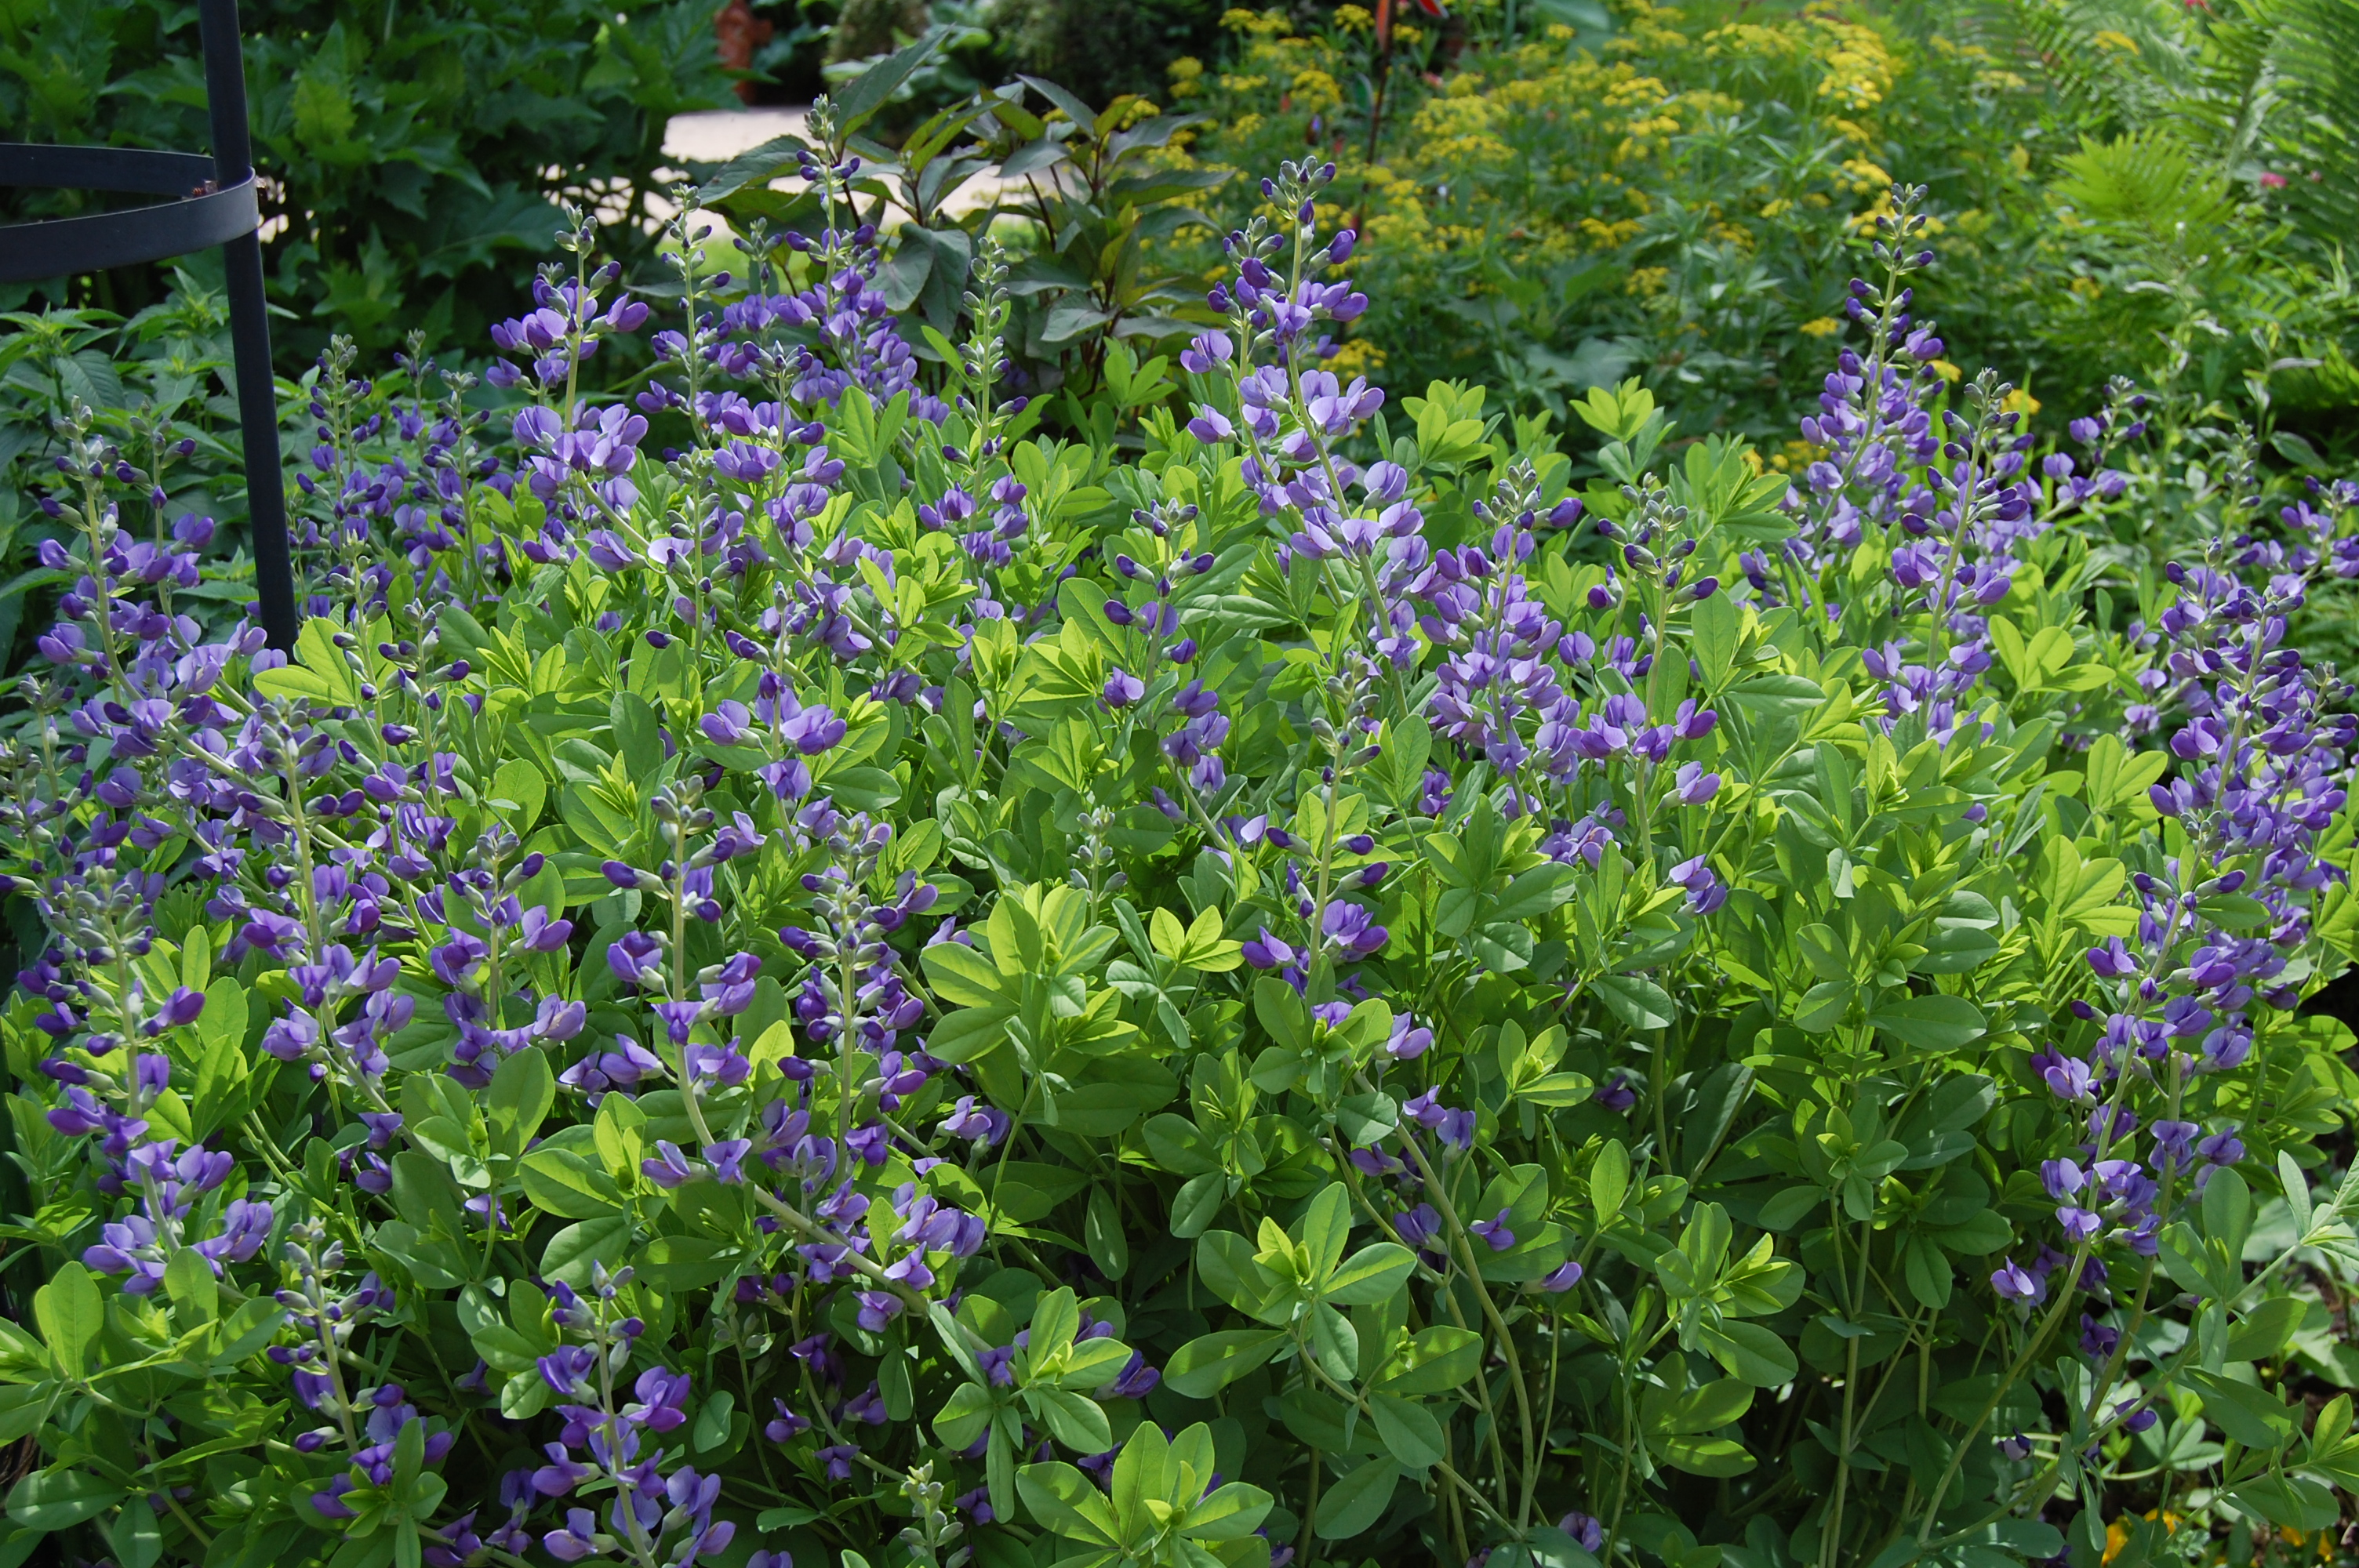 Blue blooms smiling at me gardeninacity for The indigo